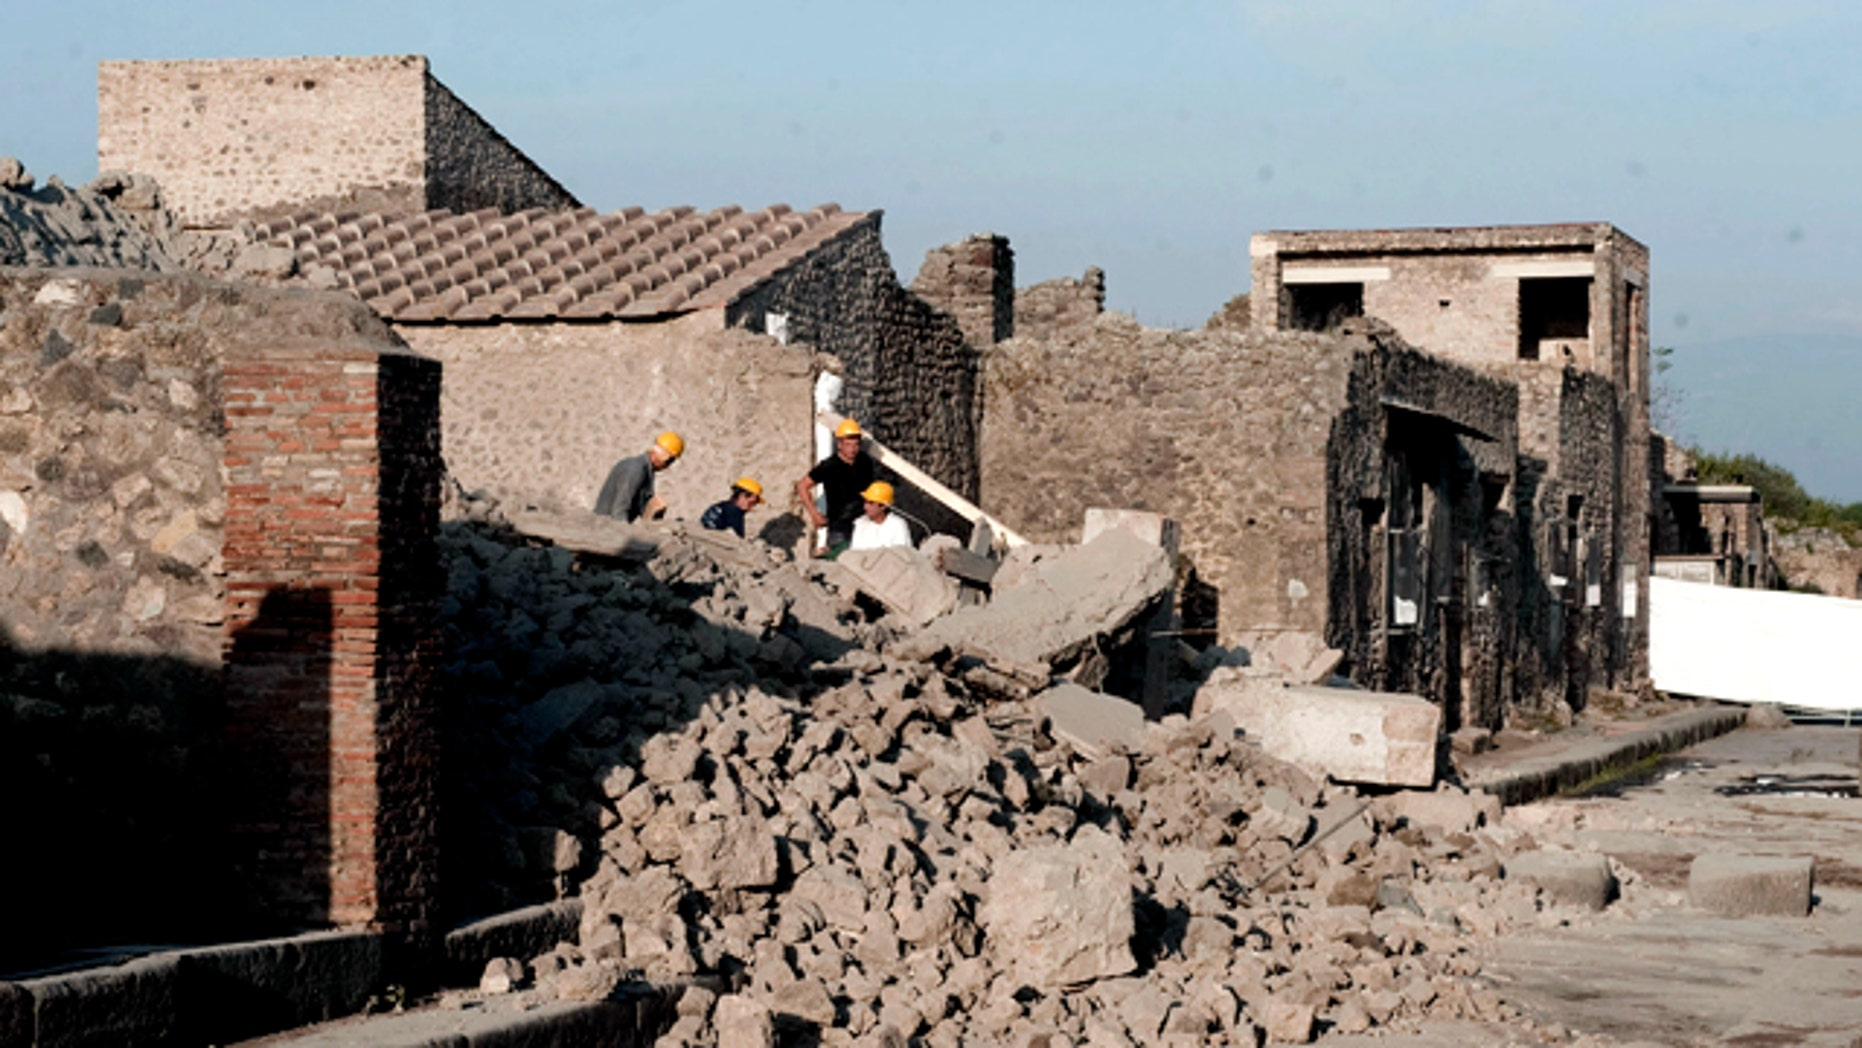 Workers stand among debris in the ancient Roman city of Pompeii, Italy, Saturday, Nov. 6, 2010. Officials say that a house in the ancient Roman city of Pompeii once used by gladiators to train before combat has collapsed. The site was closed at the time and nobody was injured. The office of Pompeii's archaeological superintendent said the collapse occurred Saturday at around 6 a.m. (0500 GMT). Attendants opening the site saw the collapse about an hour later.